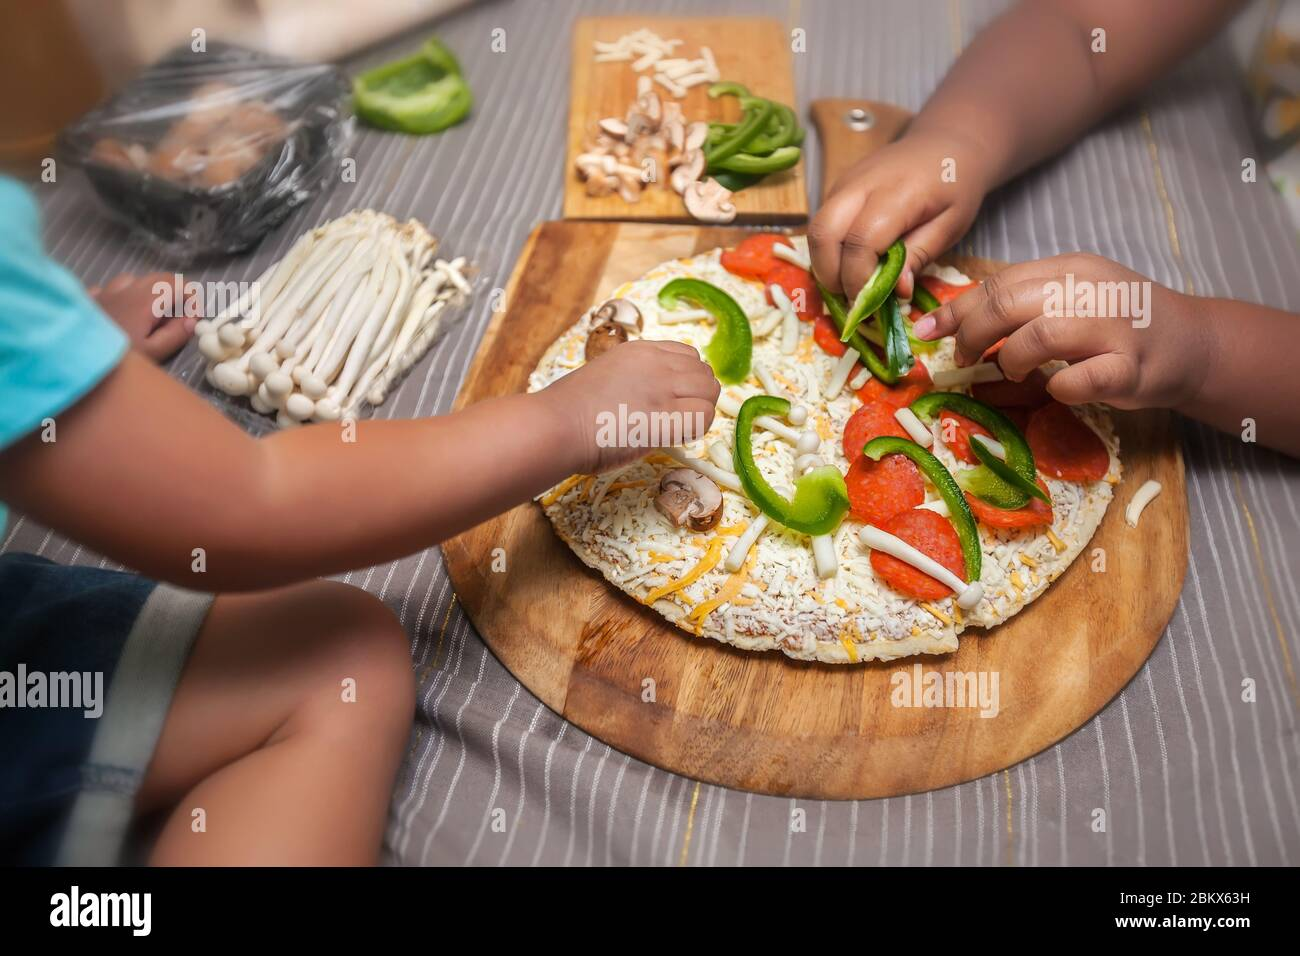 Children adding fresh toppings to a frozen cheese pizza on a wooden pizza peel. Stock Photo